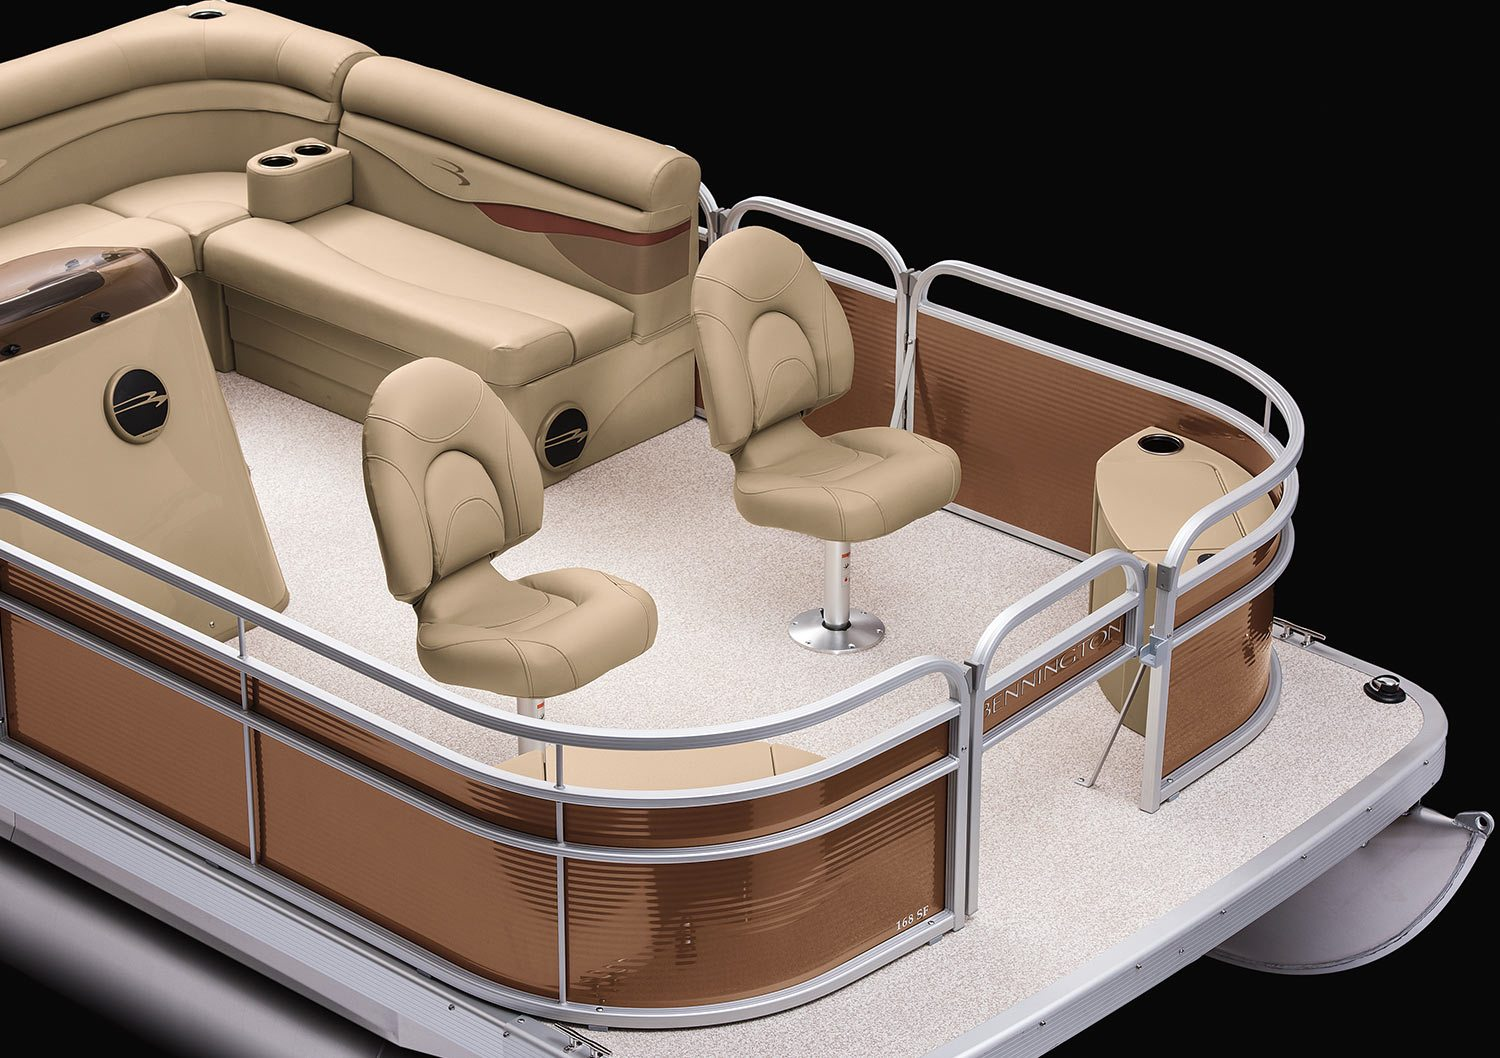 2017 S16 8 Wide Fishing Pontoon Boats By Bennington